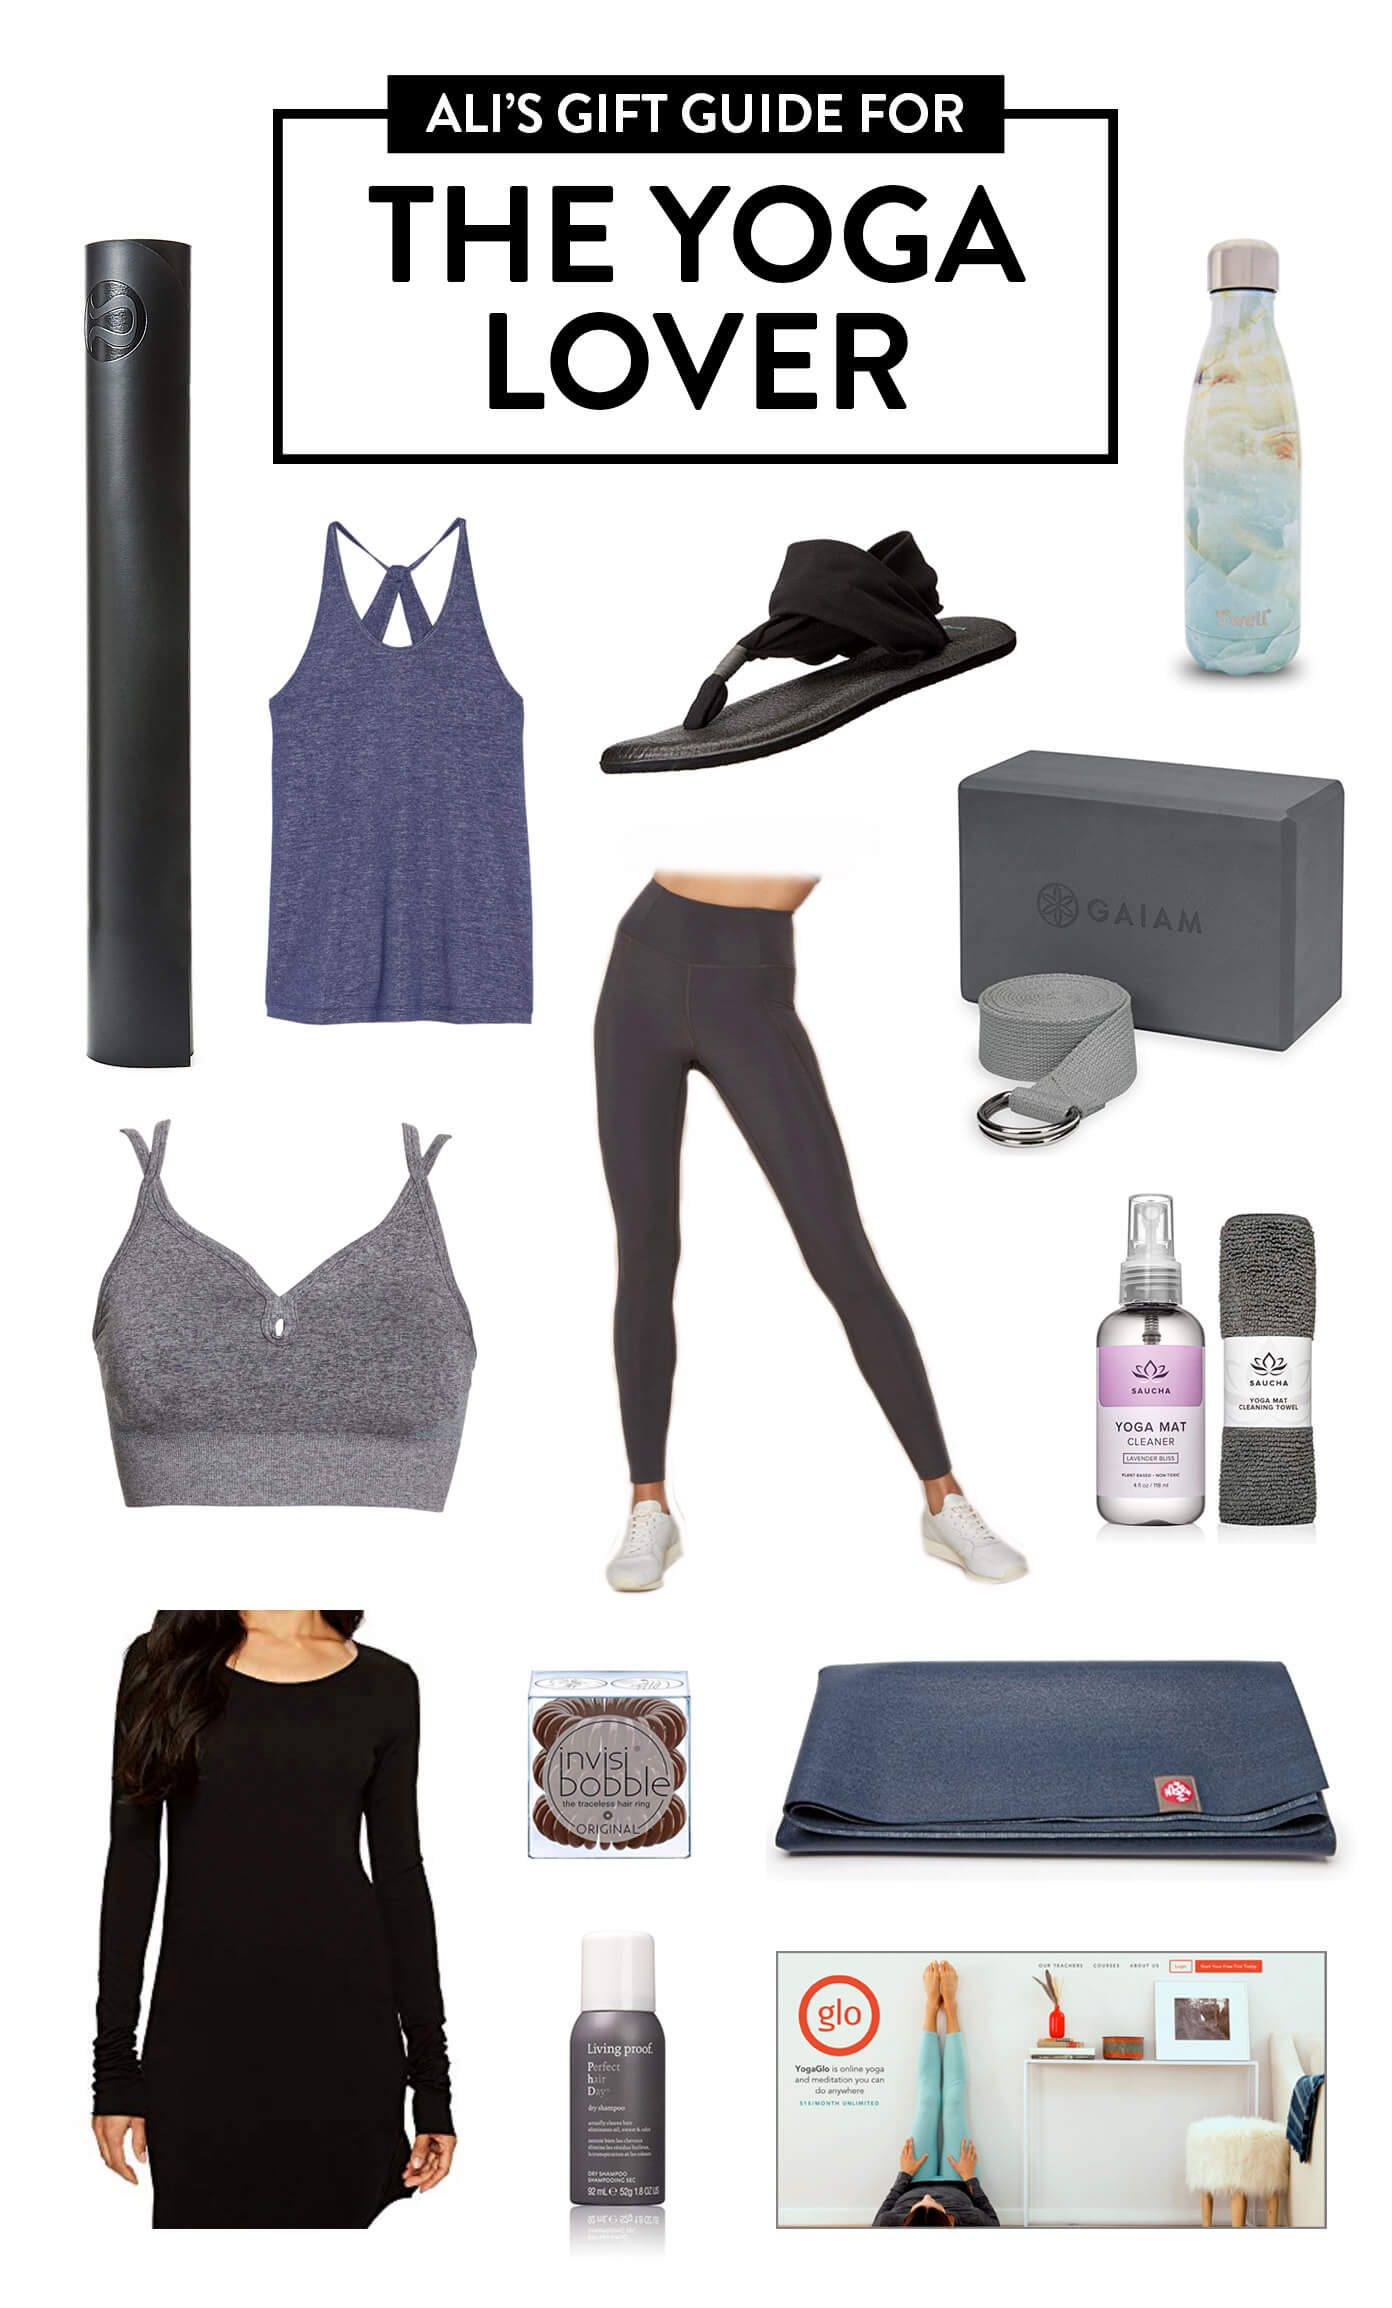 2018 Gimme Some Oven Holiday Gift Guide: The Yoga Lover